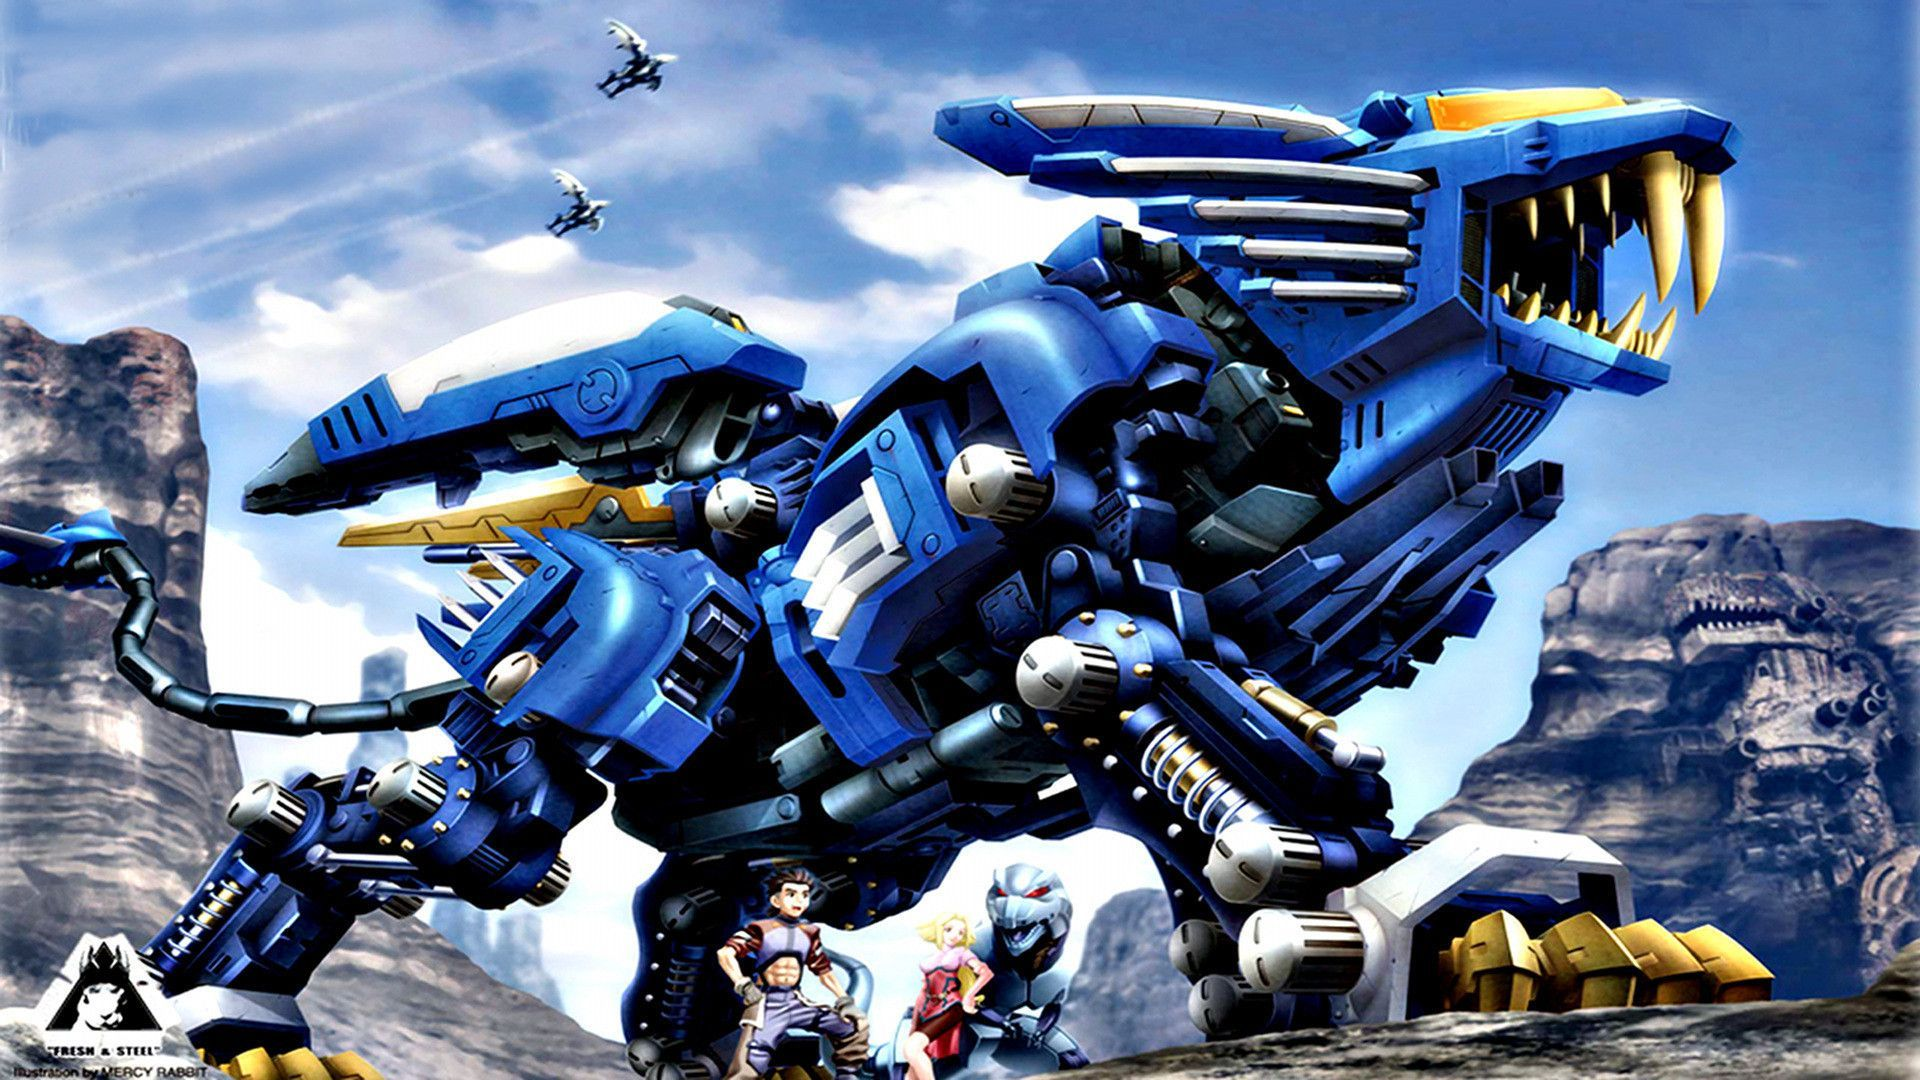 Zoids Liger (With images) Robot animal, Mecha anime, Liger